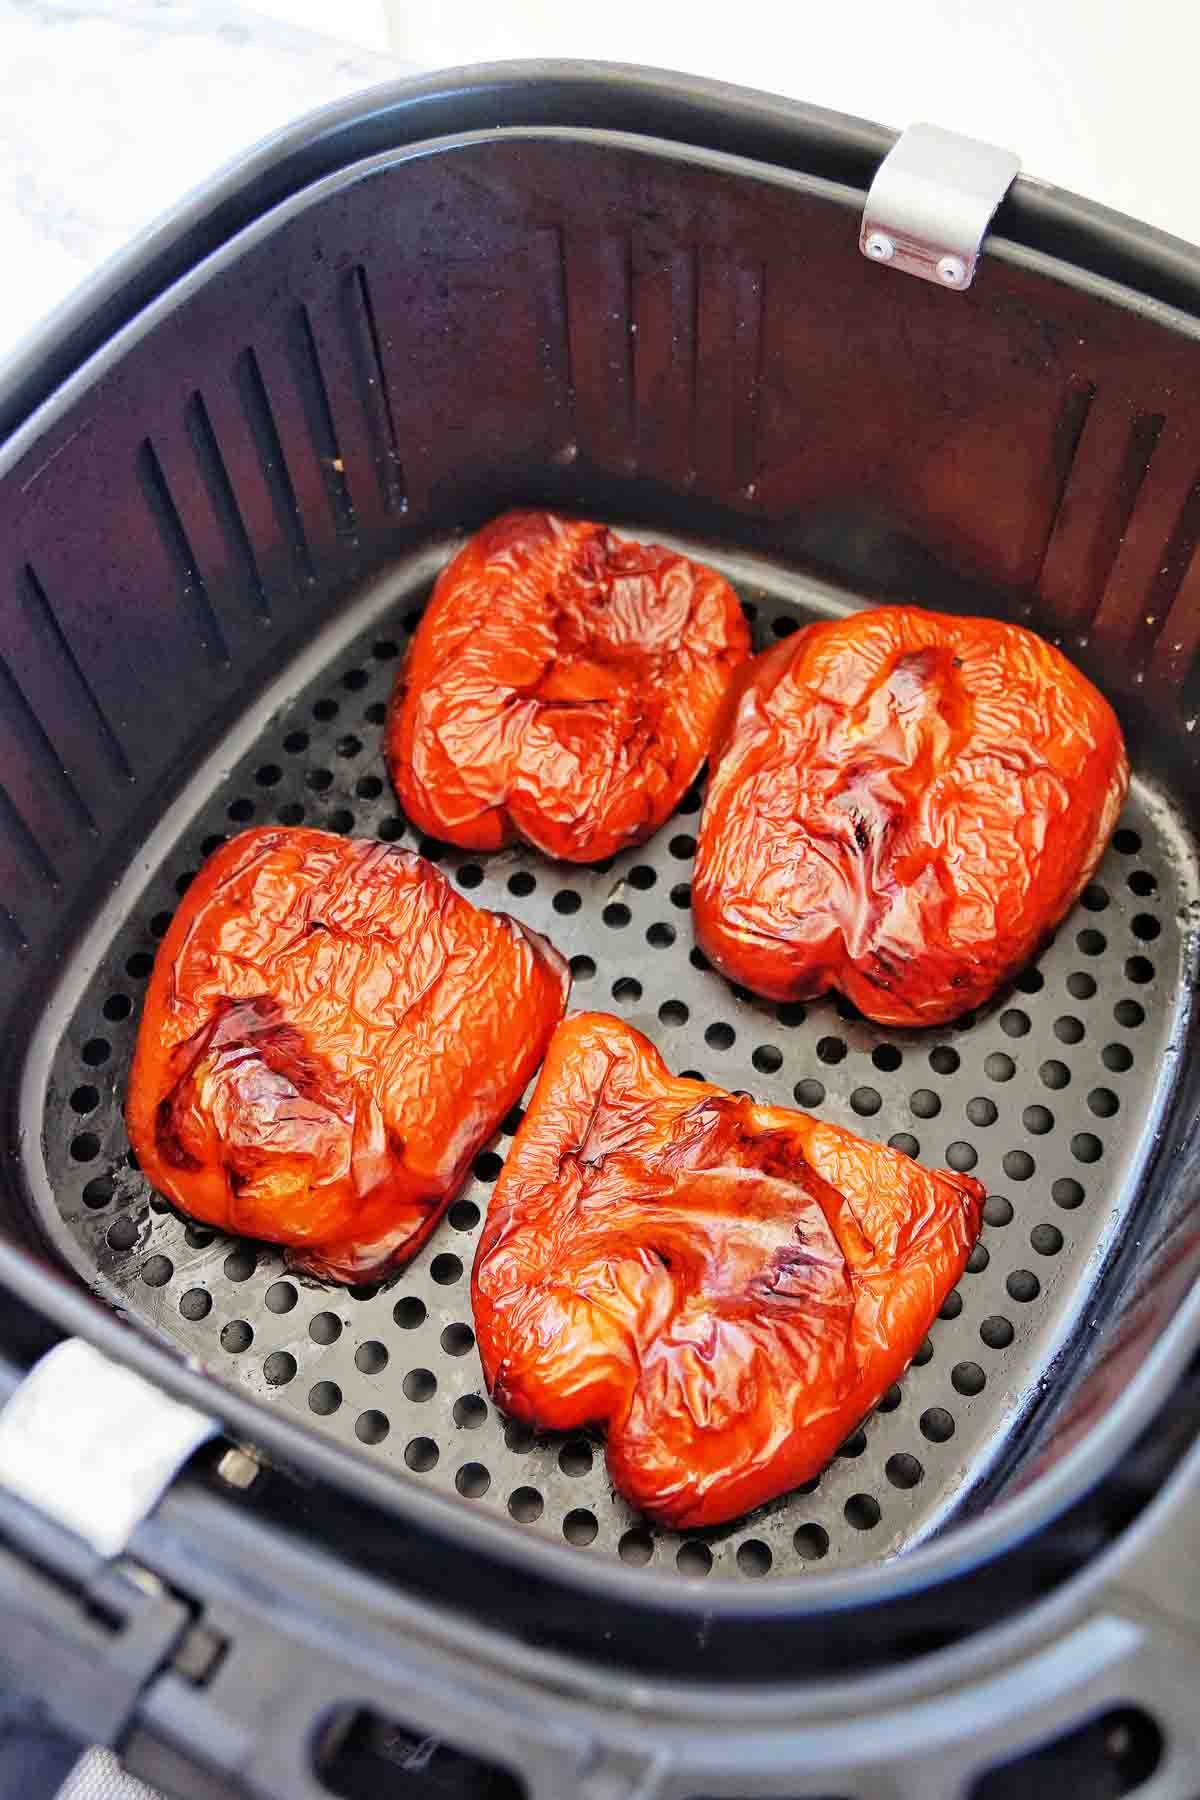 Roasted Red Peppers in Air Fryer Basket